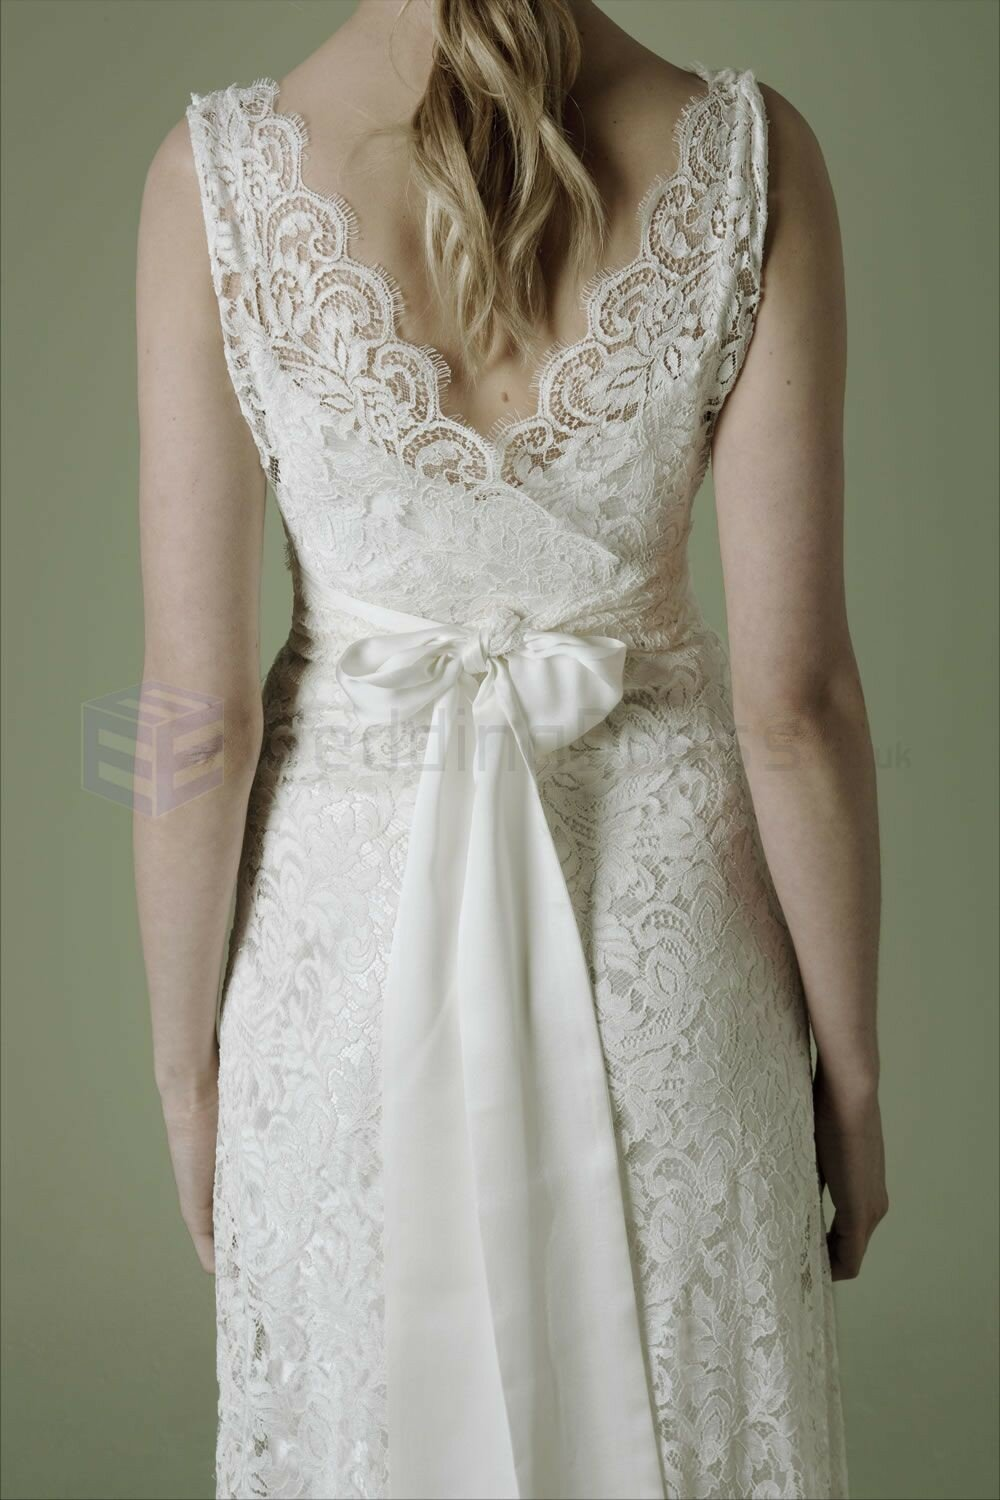 Vintage inspired short wedding dresses pictures ideas for Short wedding dresses uk